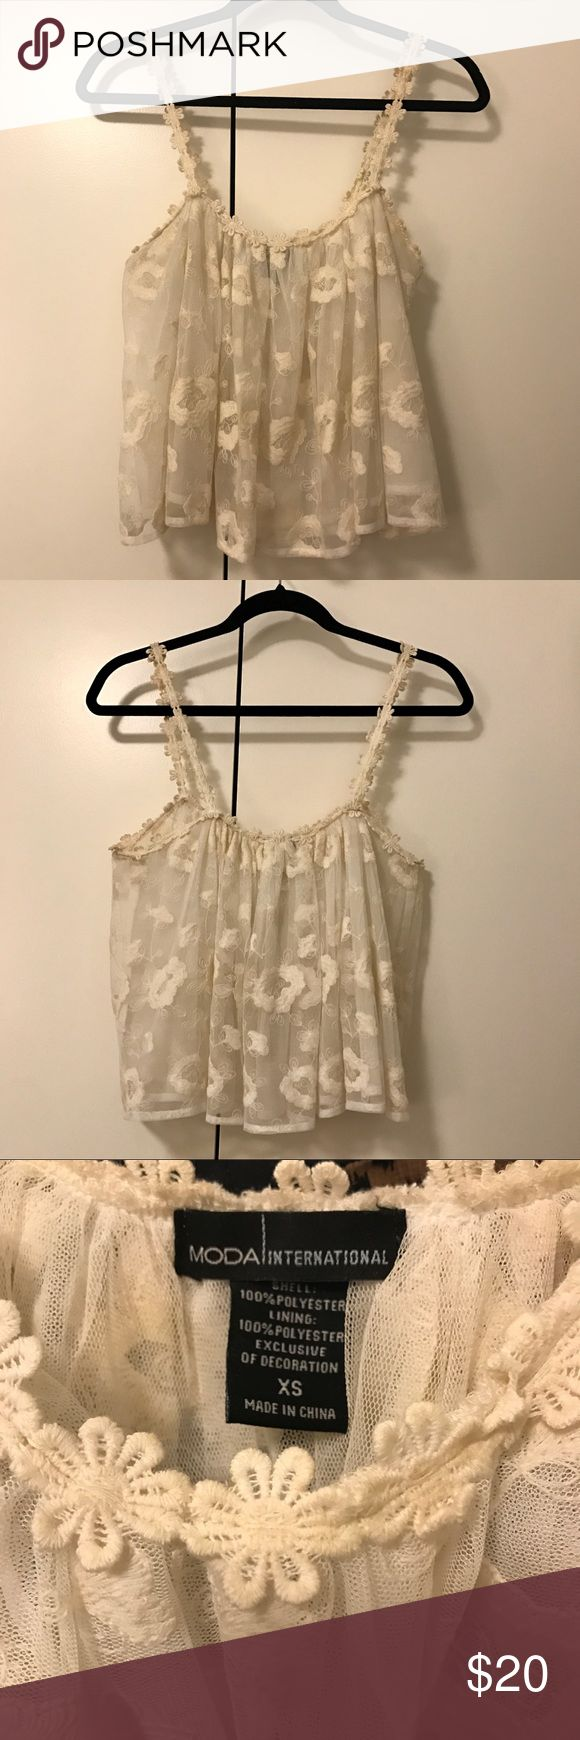 Laced Cream Cropped Top - Moda Internacional Laced cropped top with double lining. Meshed lace and little flower appliqué on the straps. Perfect for a summer day with high waited jeans or shorts. Super dainty and fashionable. Moda International Tops Crop Tops